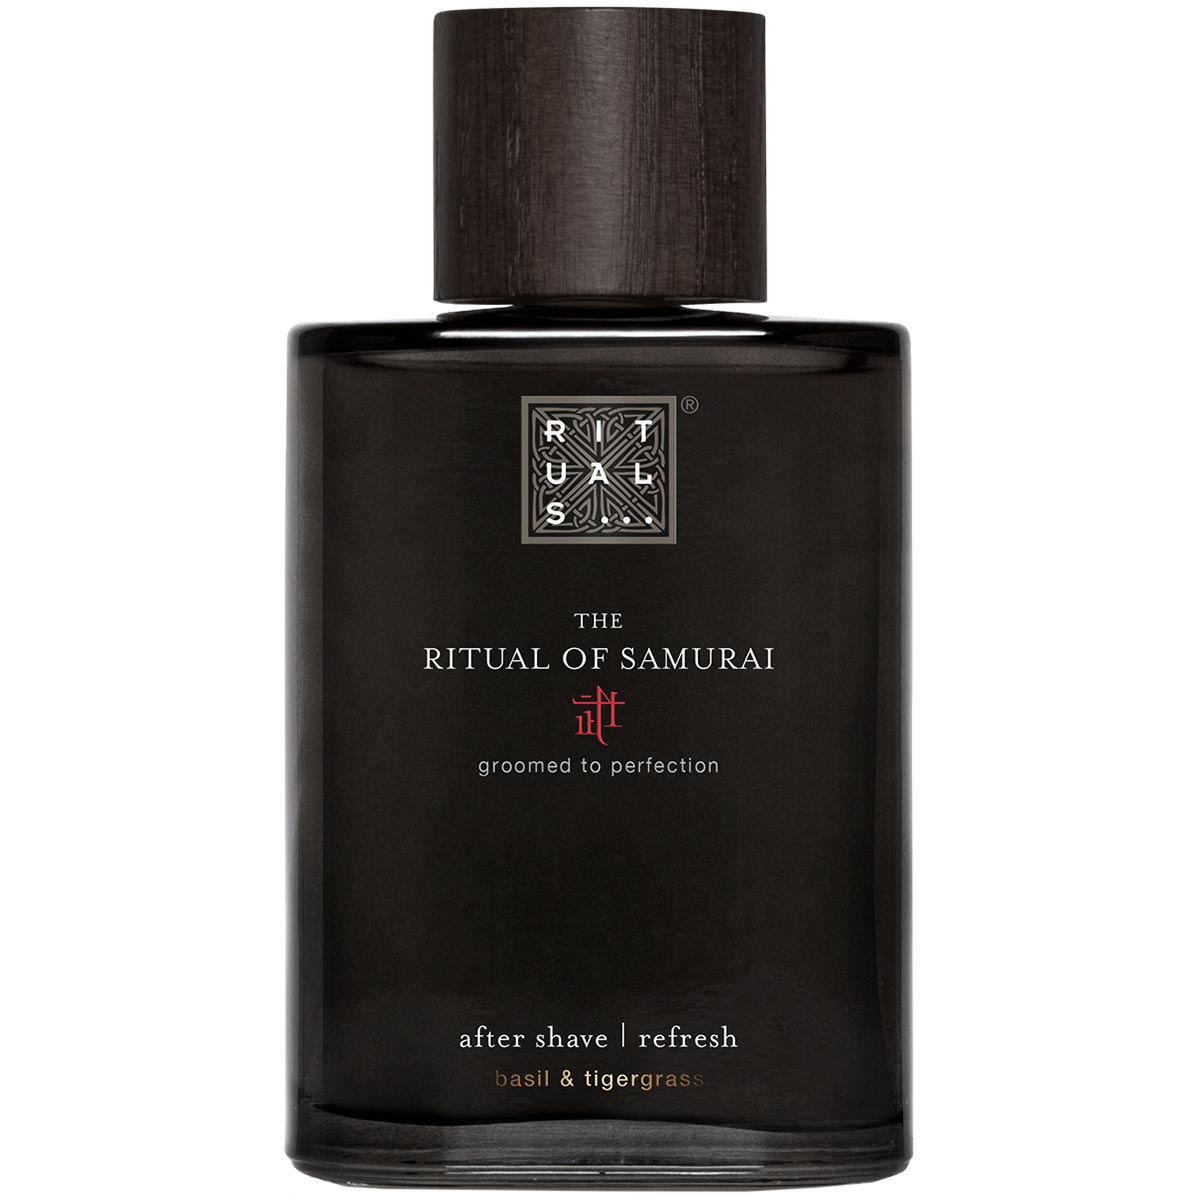 The Ritual of Samurai After Shave